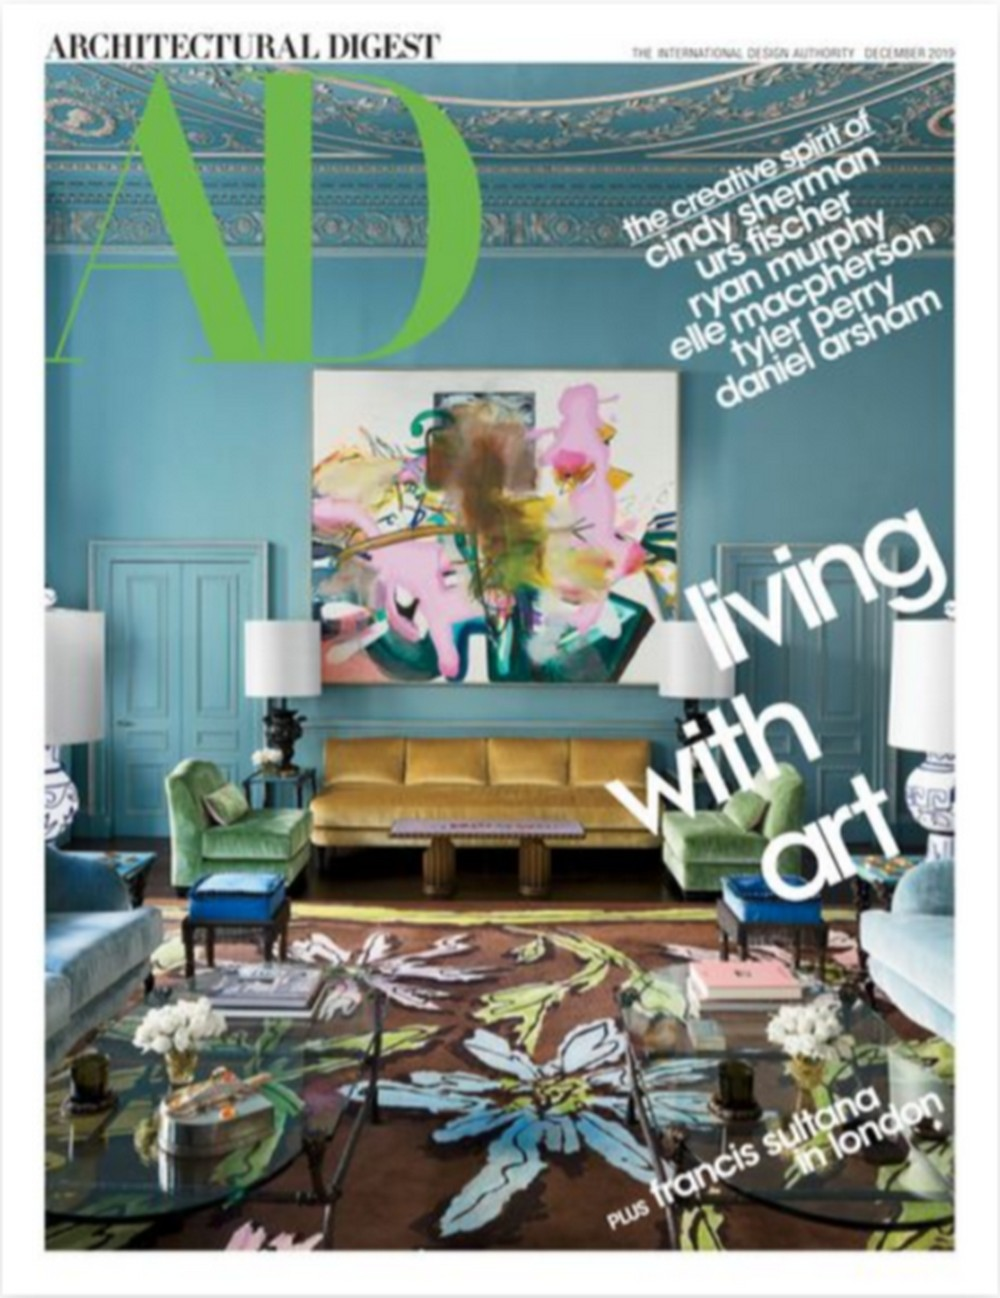 End Up The Year With These 7 Inspiring Interior Design Magazines! interior design magazines End Up The Year With These 7 Inspiring Interior Design Magazines! End Up The Year With These 7 Inspiring Interior Design Magazines 2